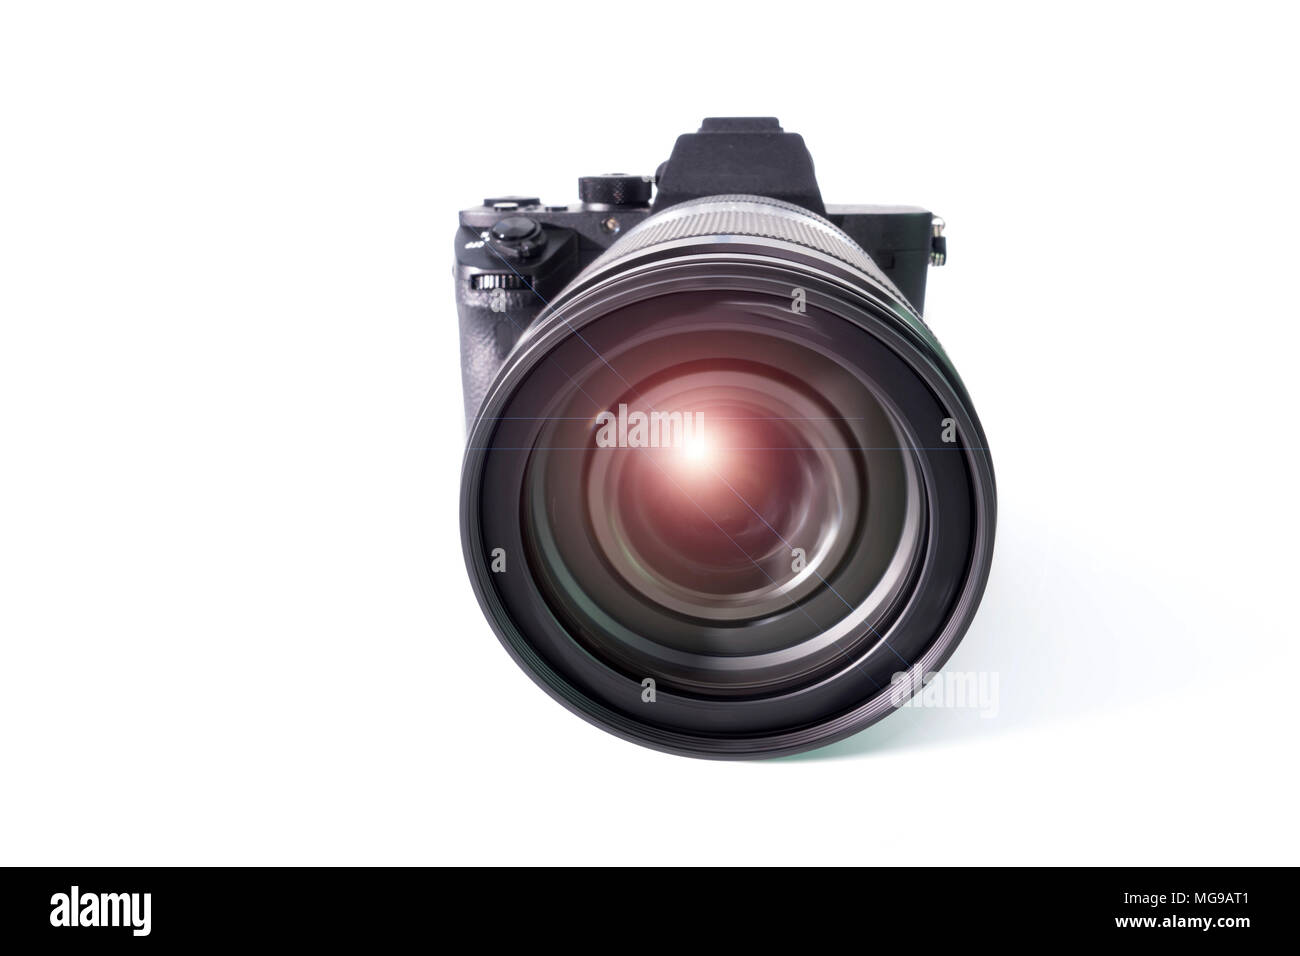 Digital mirrorless camera with zoom lens. - Stock Image